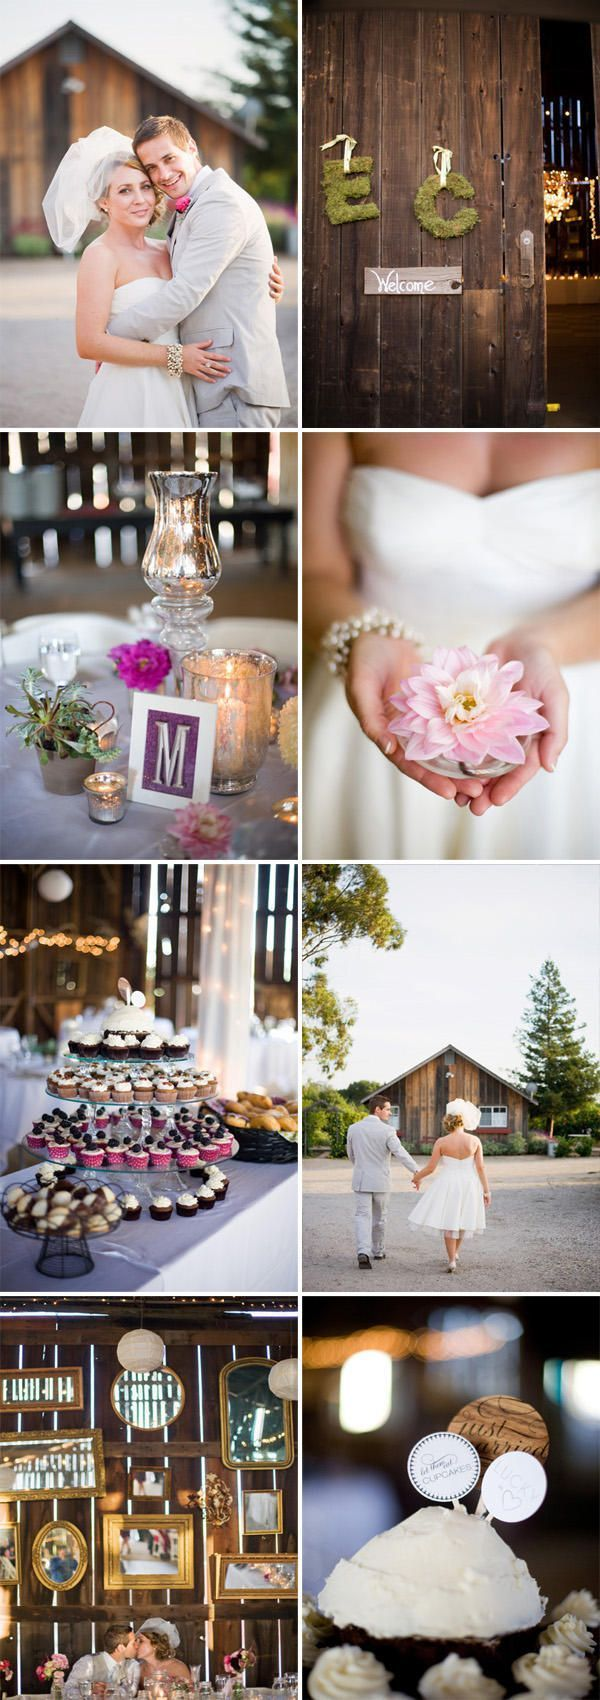 cupcake-wedding-ideas